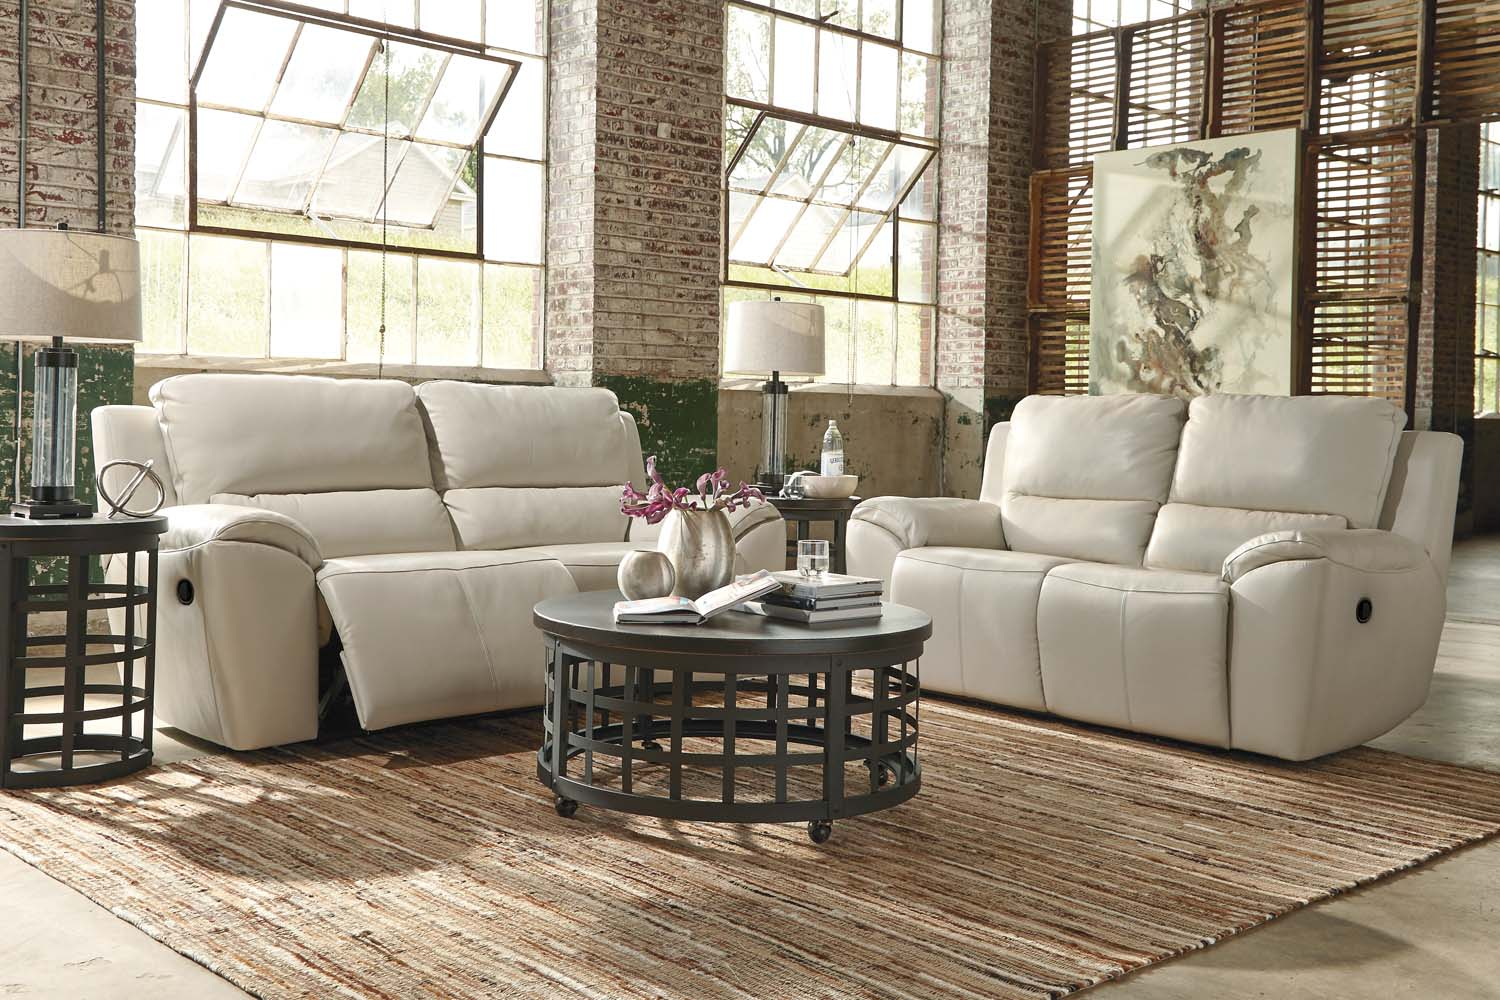 U7350081ashley Furniture 2 Seat Reclining Sofa Westco Home Furnishings